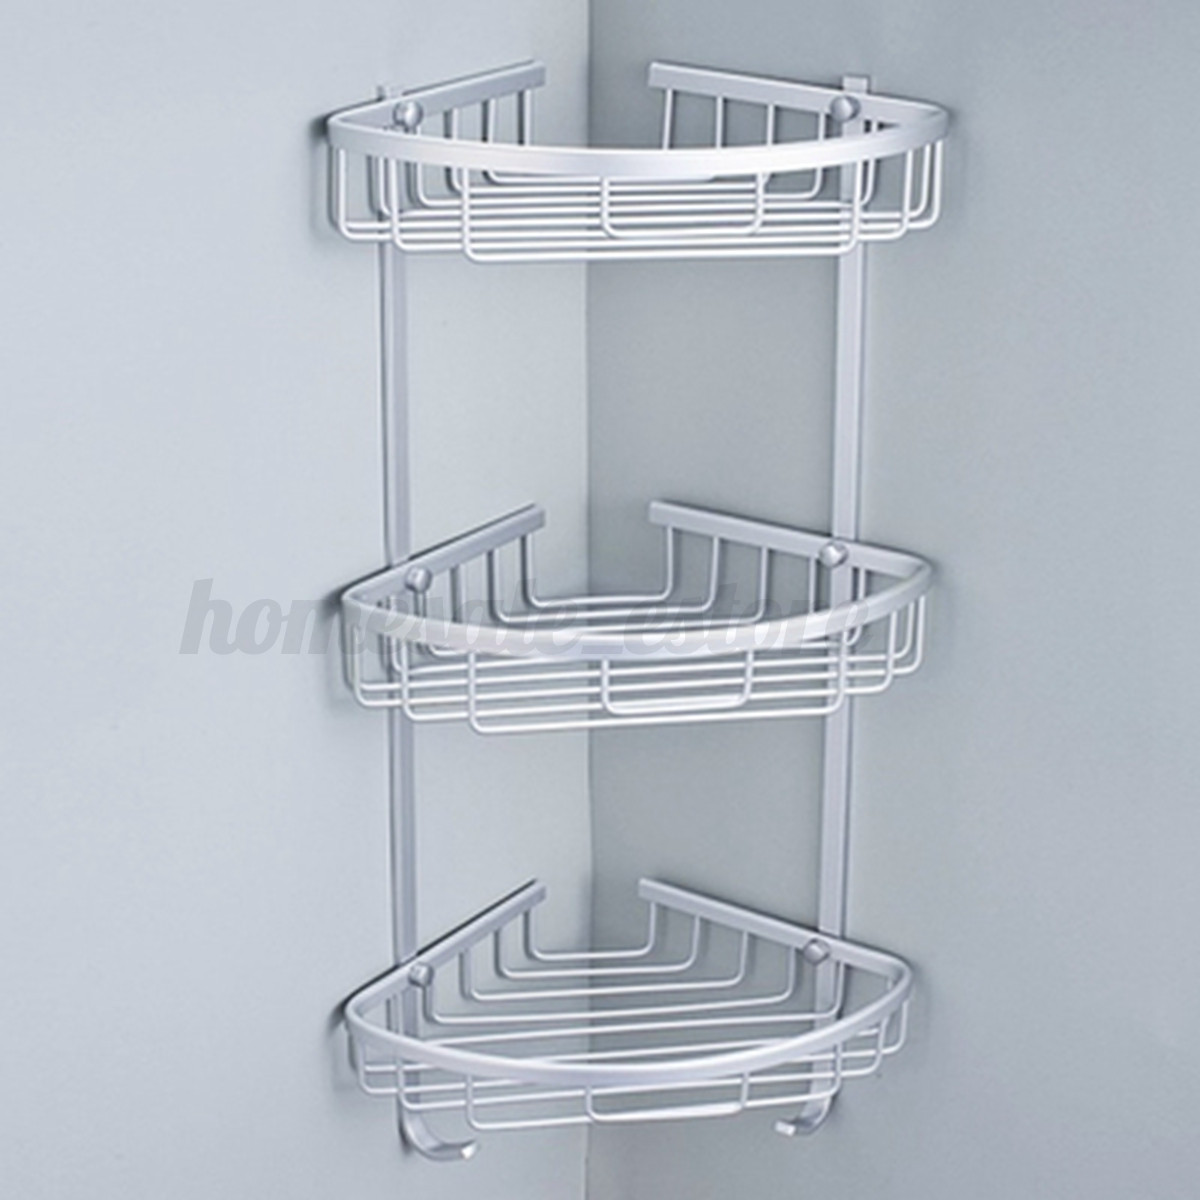 Triangular Shower Shelf Bathroom Kitchen Corner Rack Shelf Storage Basket Hanger  eBay